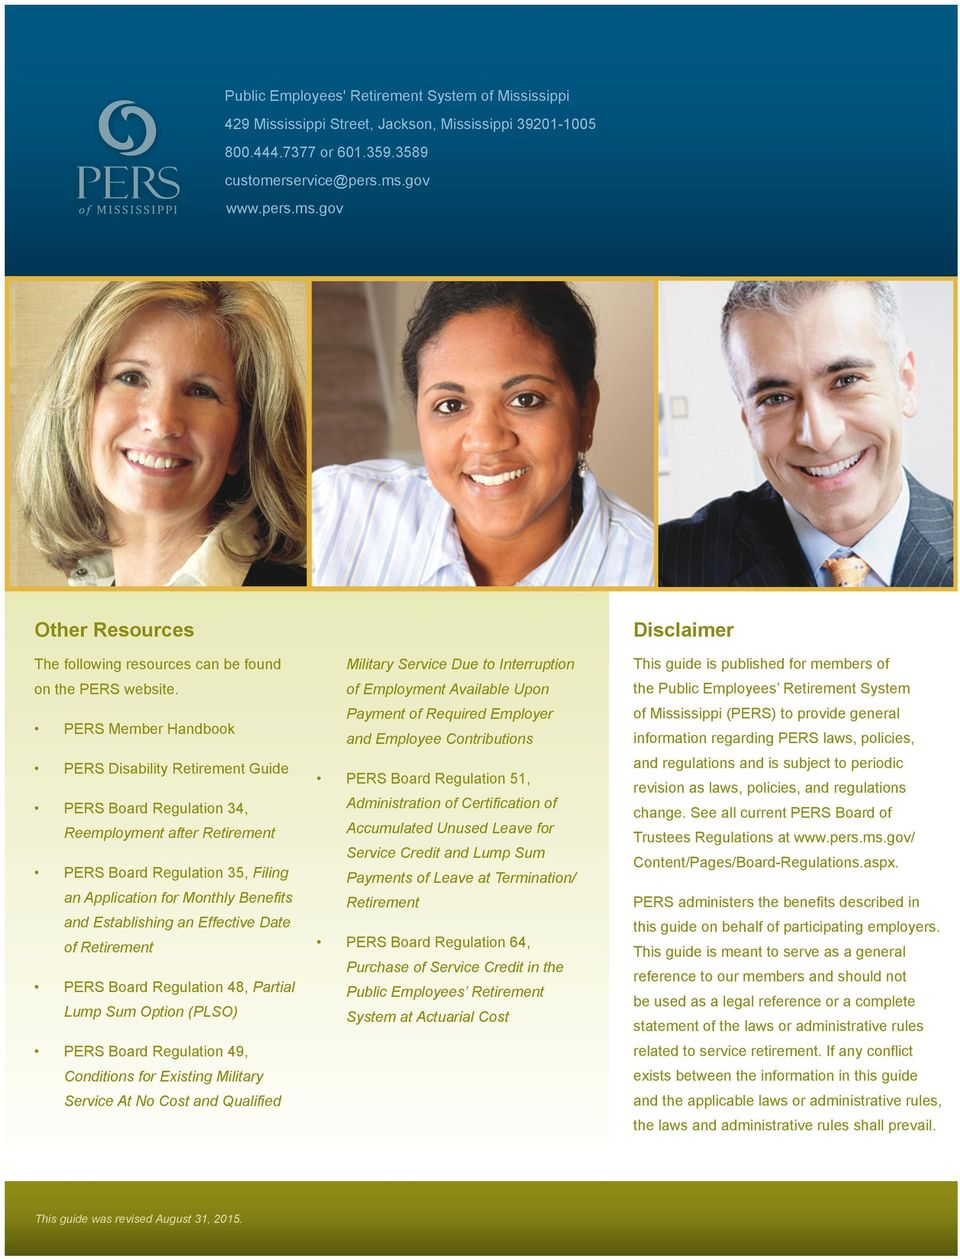 PERS Member Handbook PERS Disability Retirement Guide PERS Board Regulation 34, Reemployment after Retirement PERS Board Regulation 35, Filing an Application for Monthly Benefits and Establishing an